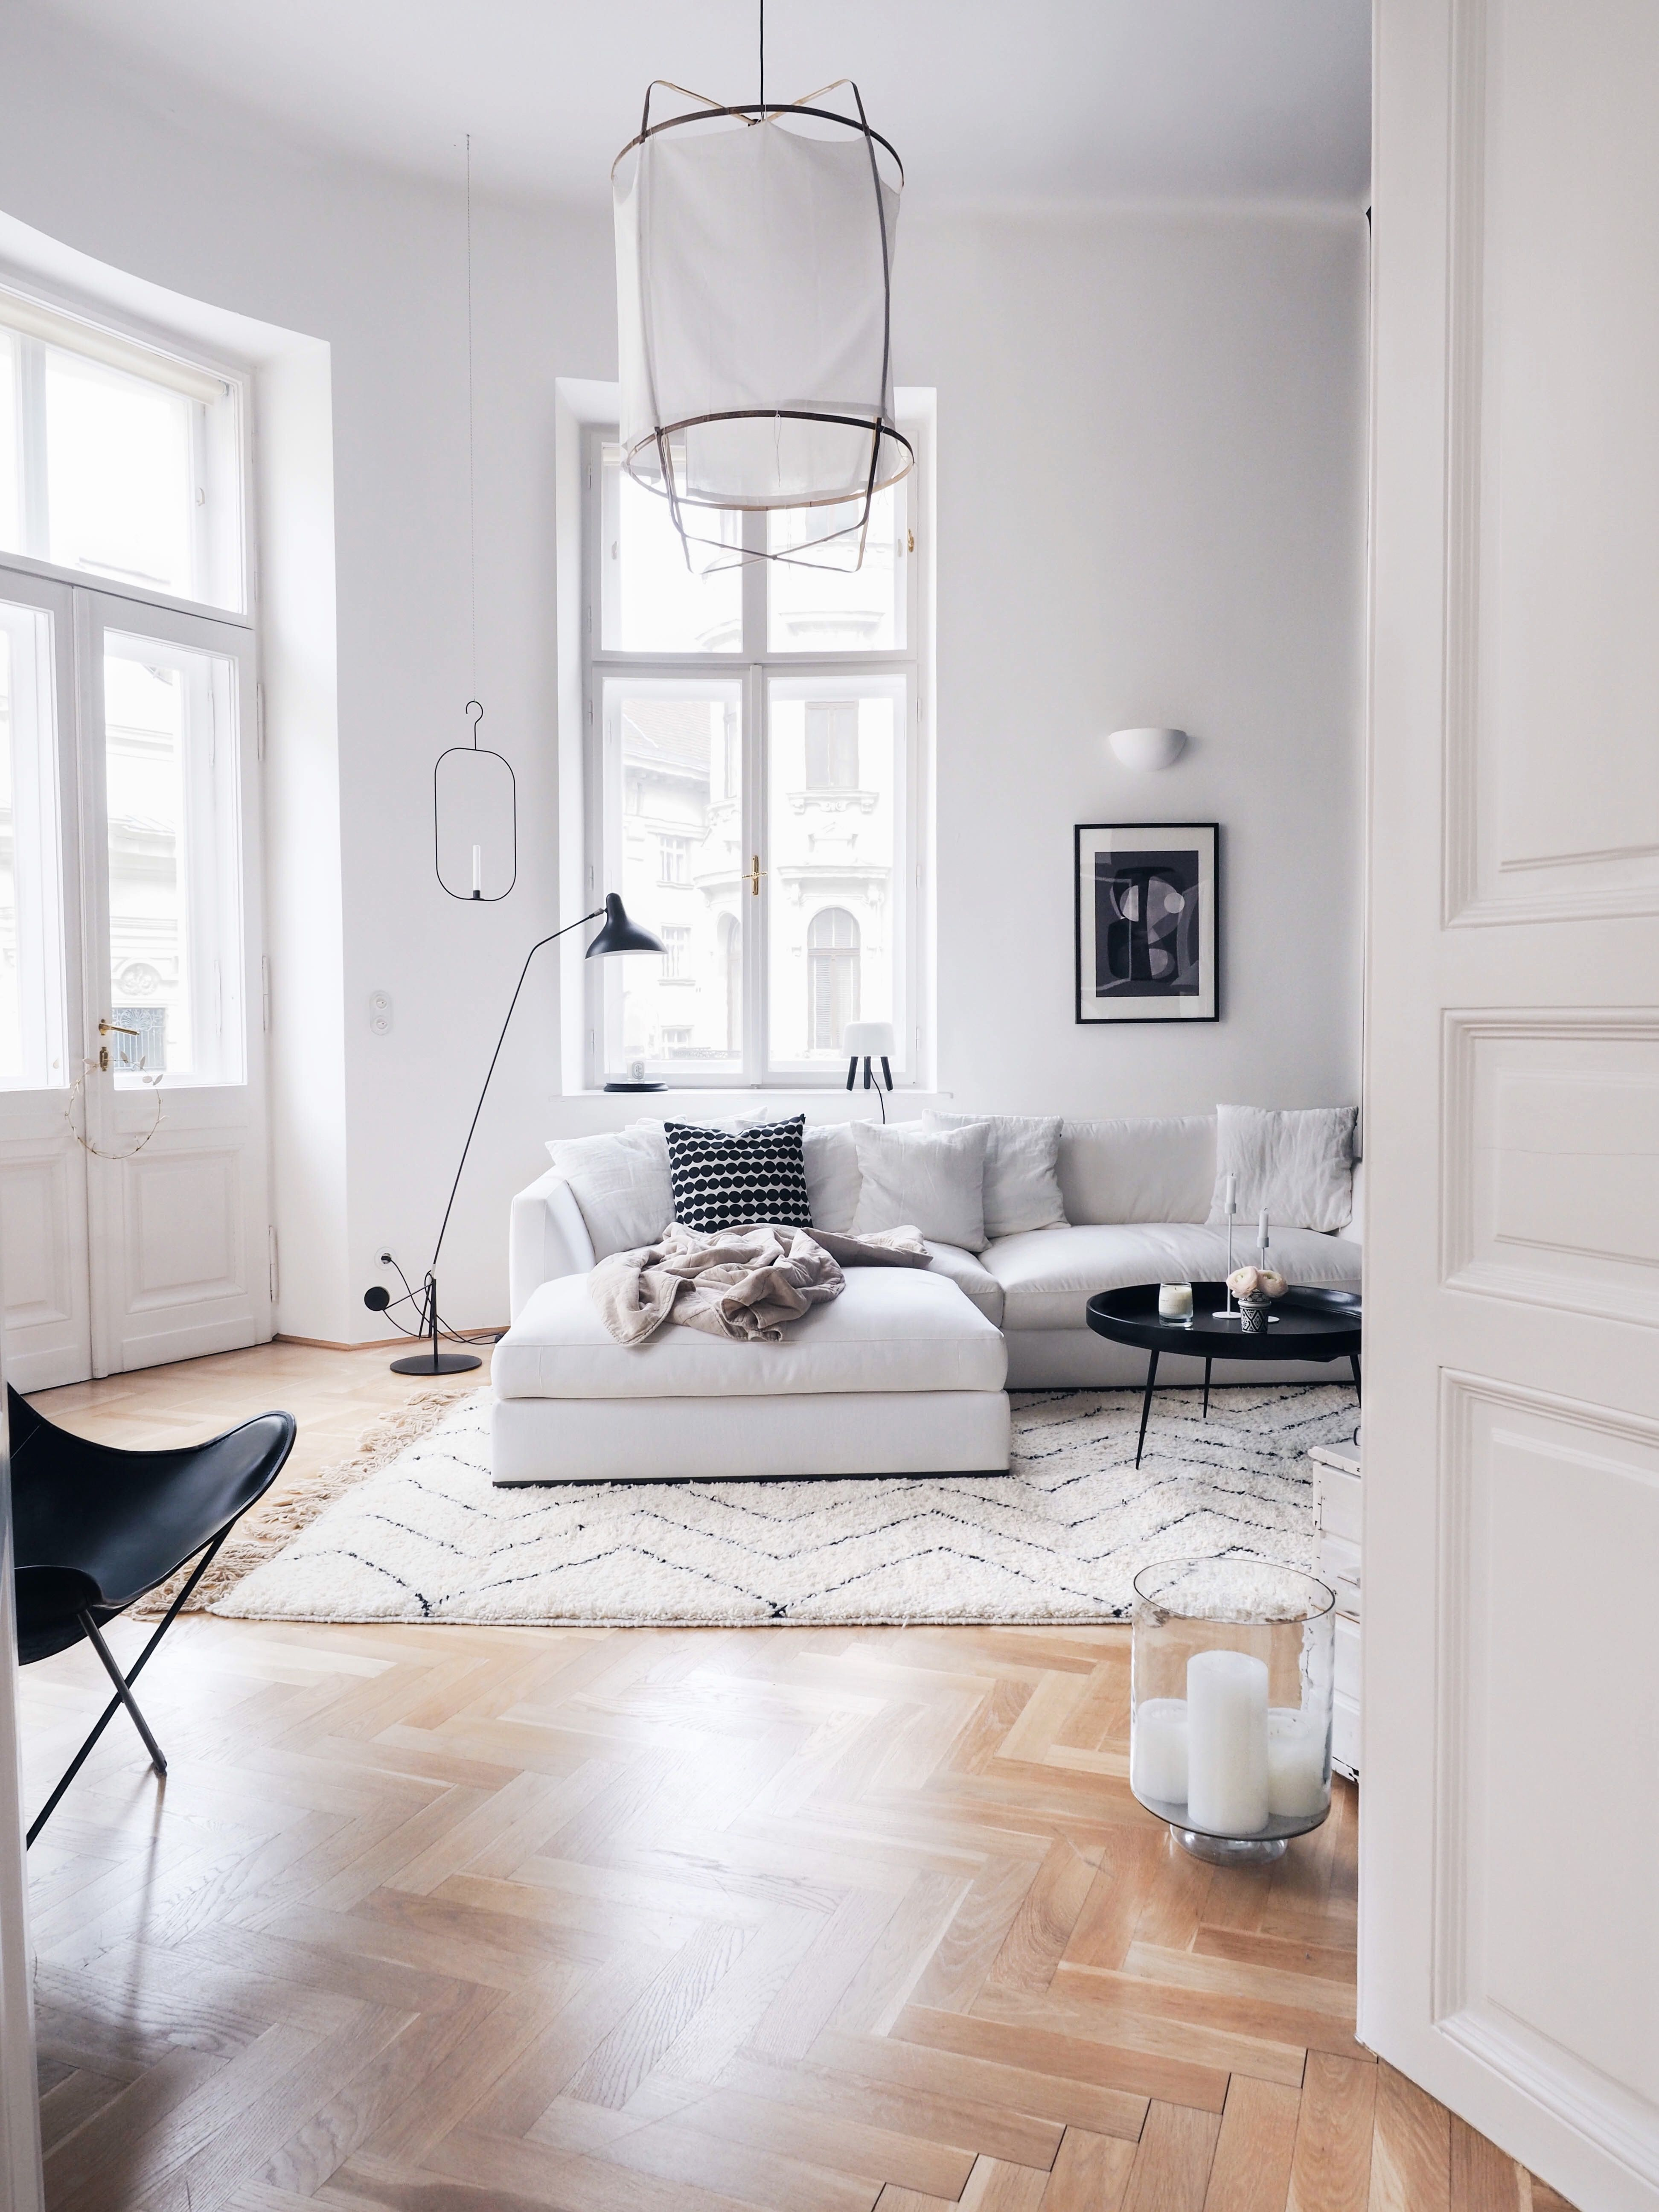 Altbau Wohnzimmer | Deko | Pinterest | Interiors, Living rooms and Room